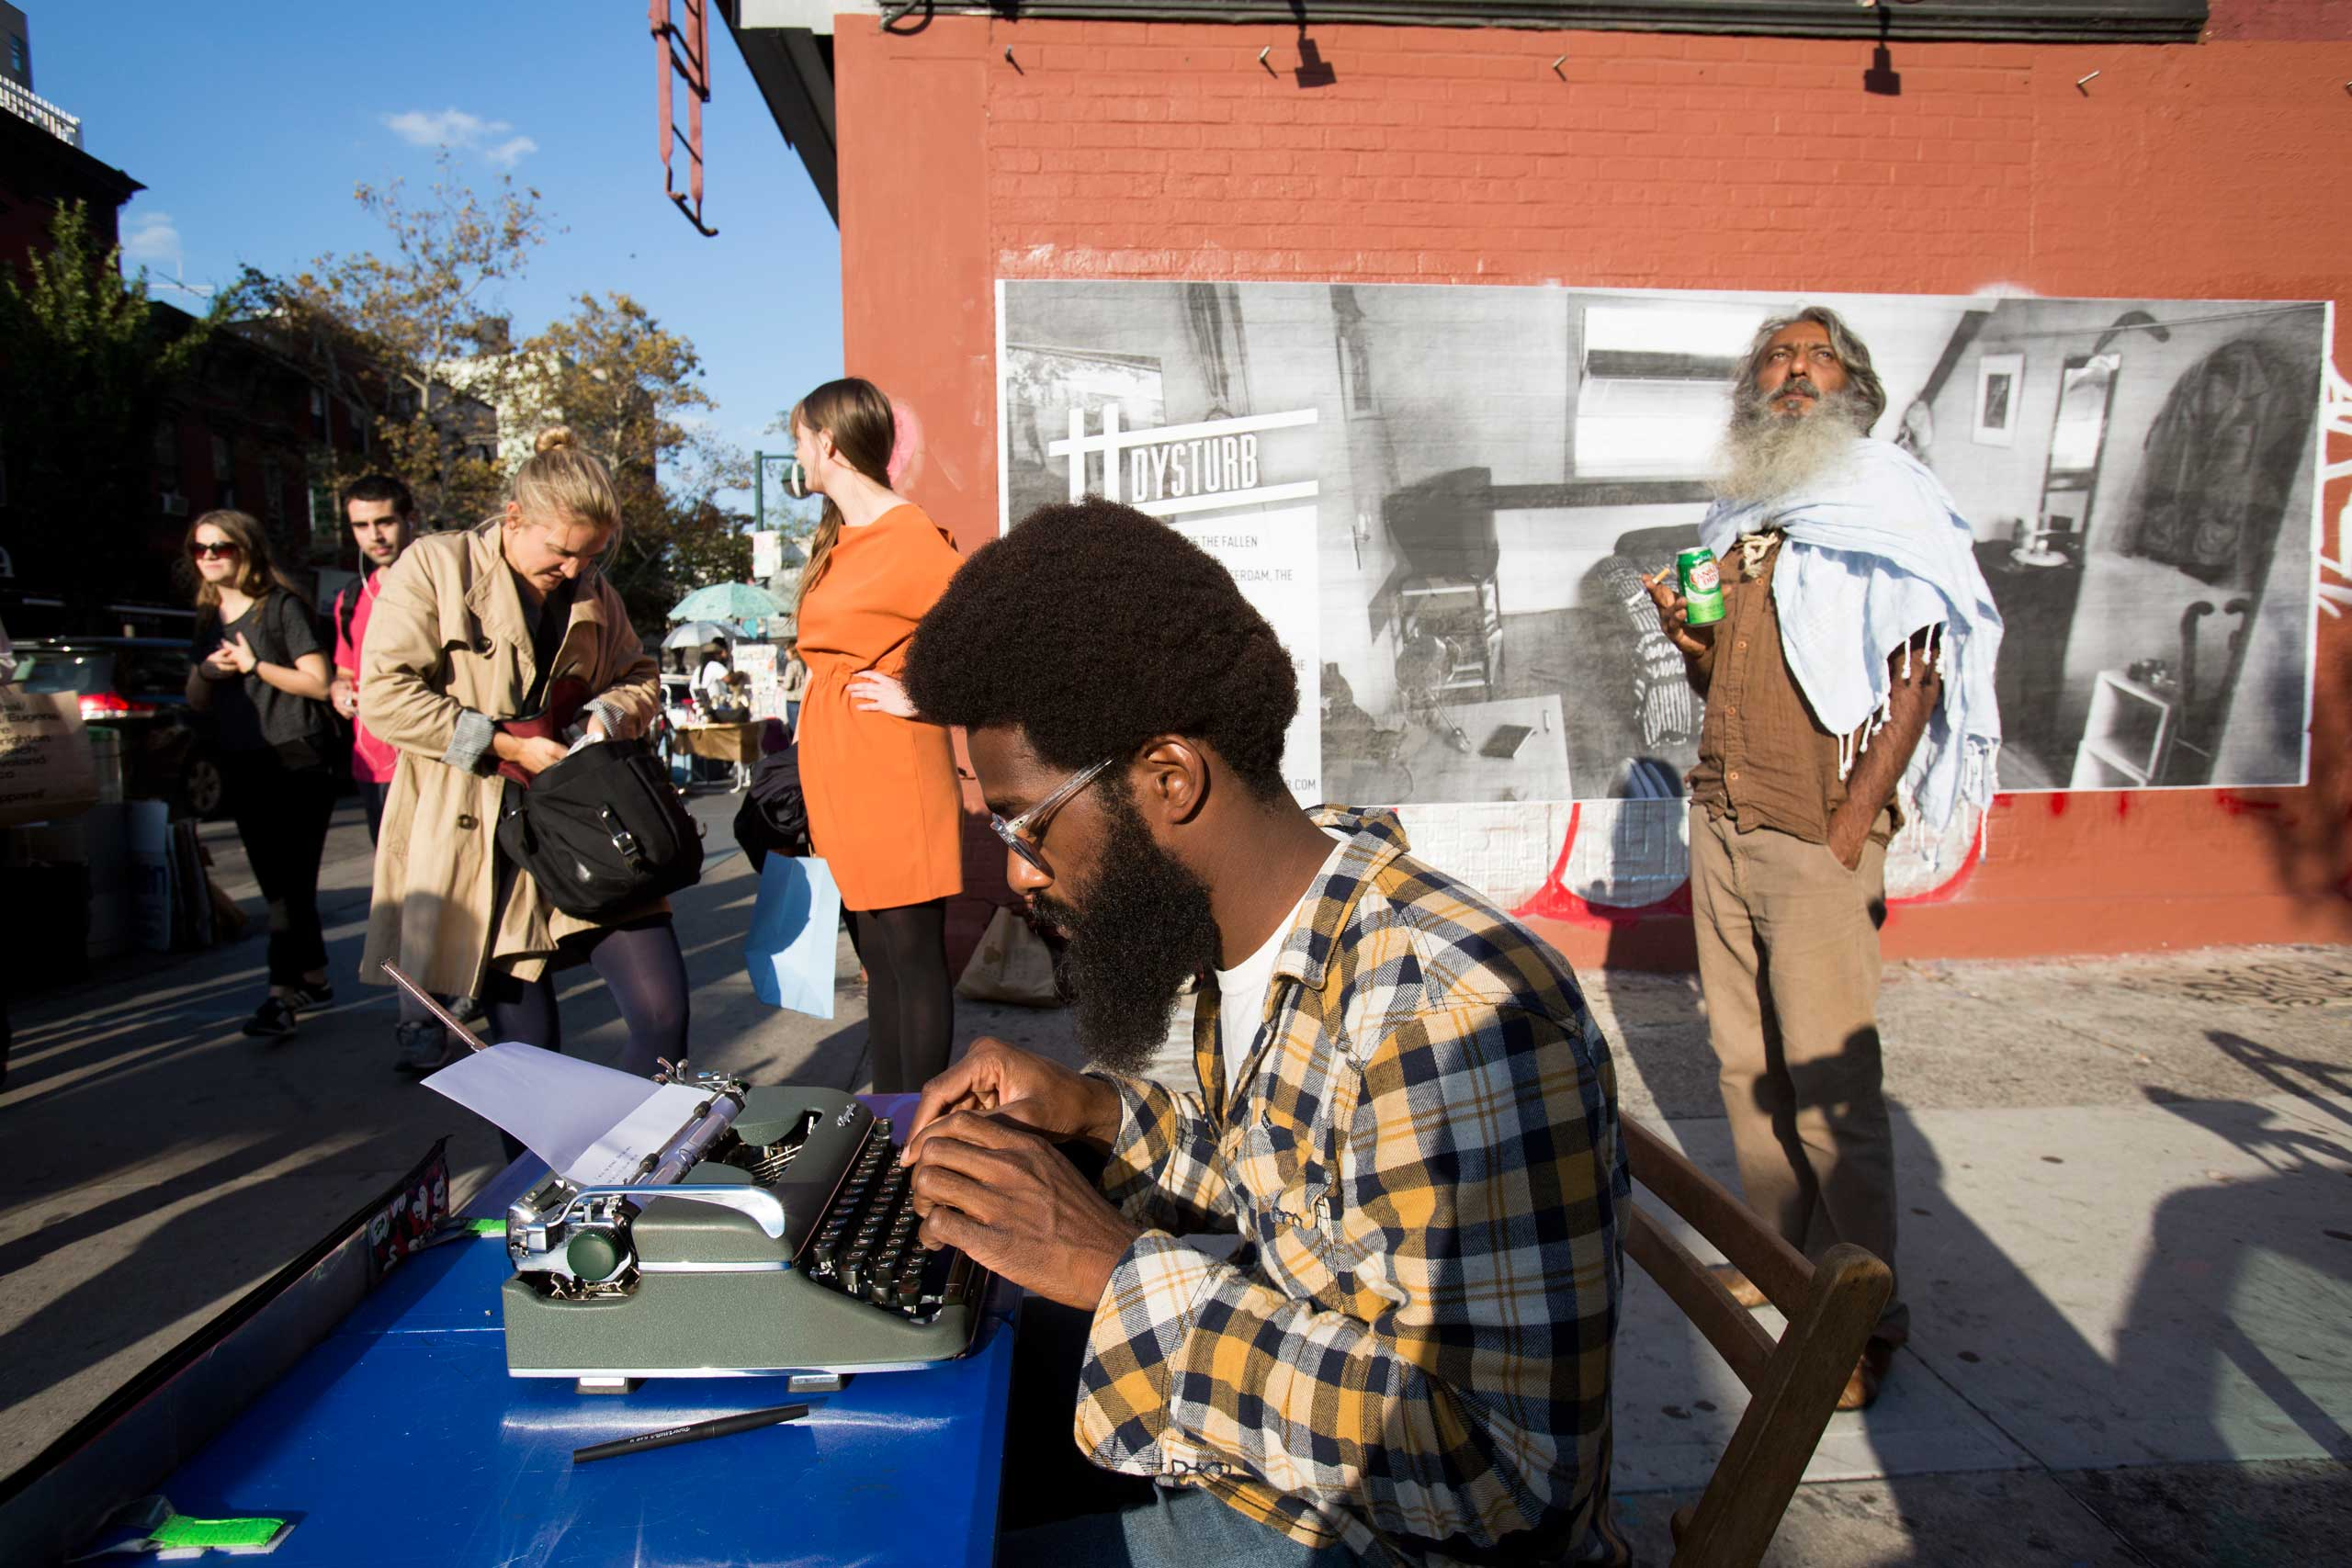 Passersby in Brooklyn, New York in front of one of Dysturb's photographs (on the corner of N 6th Street and Bedford Avenue). October 17th 2014.